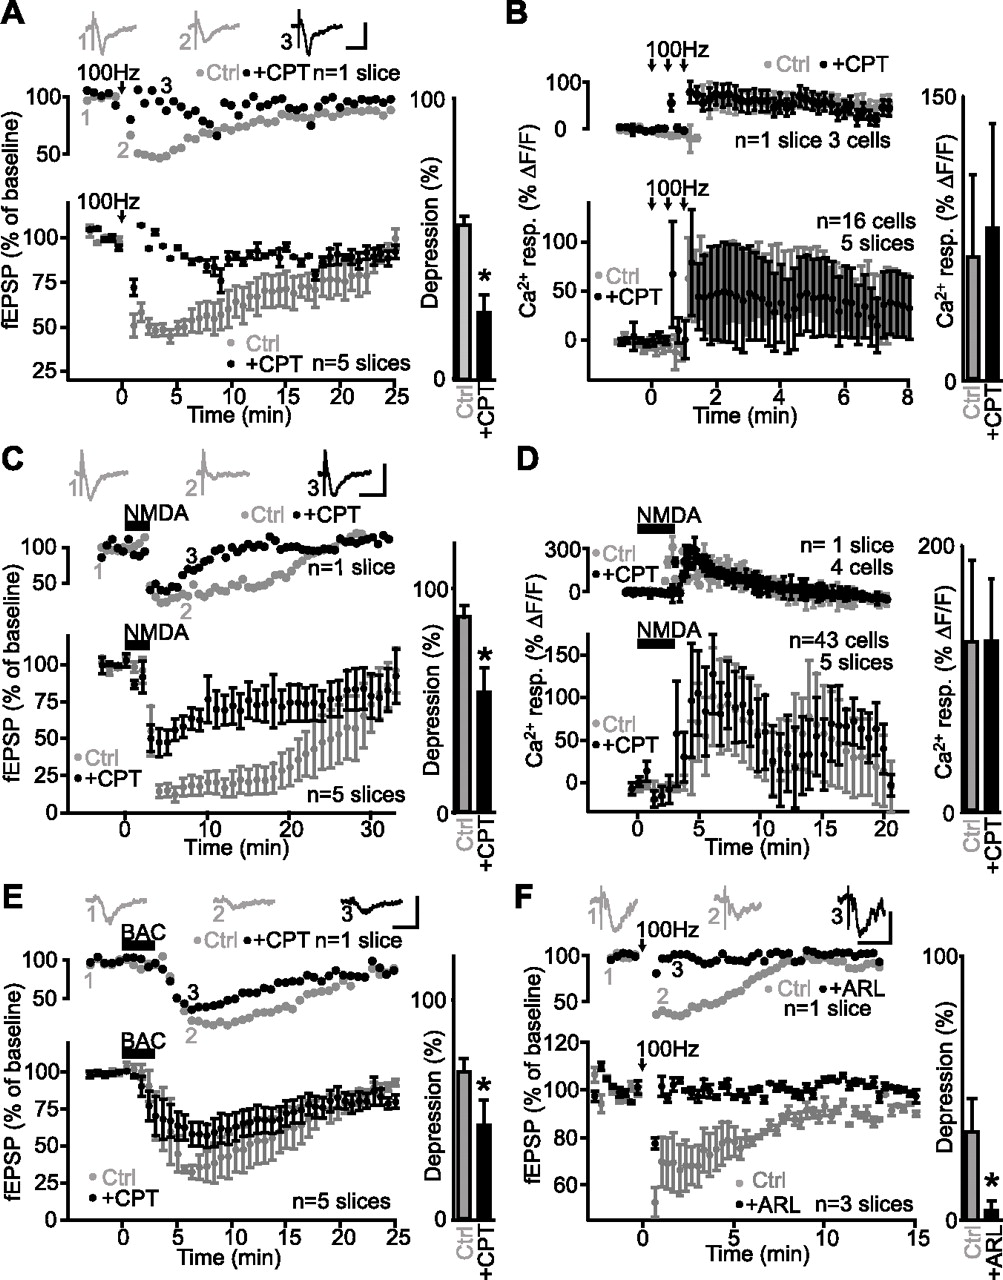 Gabaergic Network Activation Of Glial Cells Underlies Hippocampal R And Rc Firing Circuit Diagram Download Figure